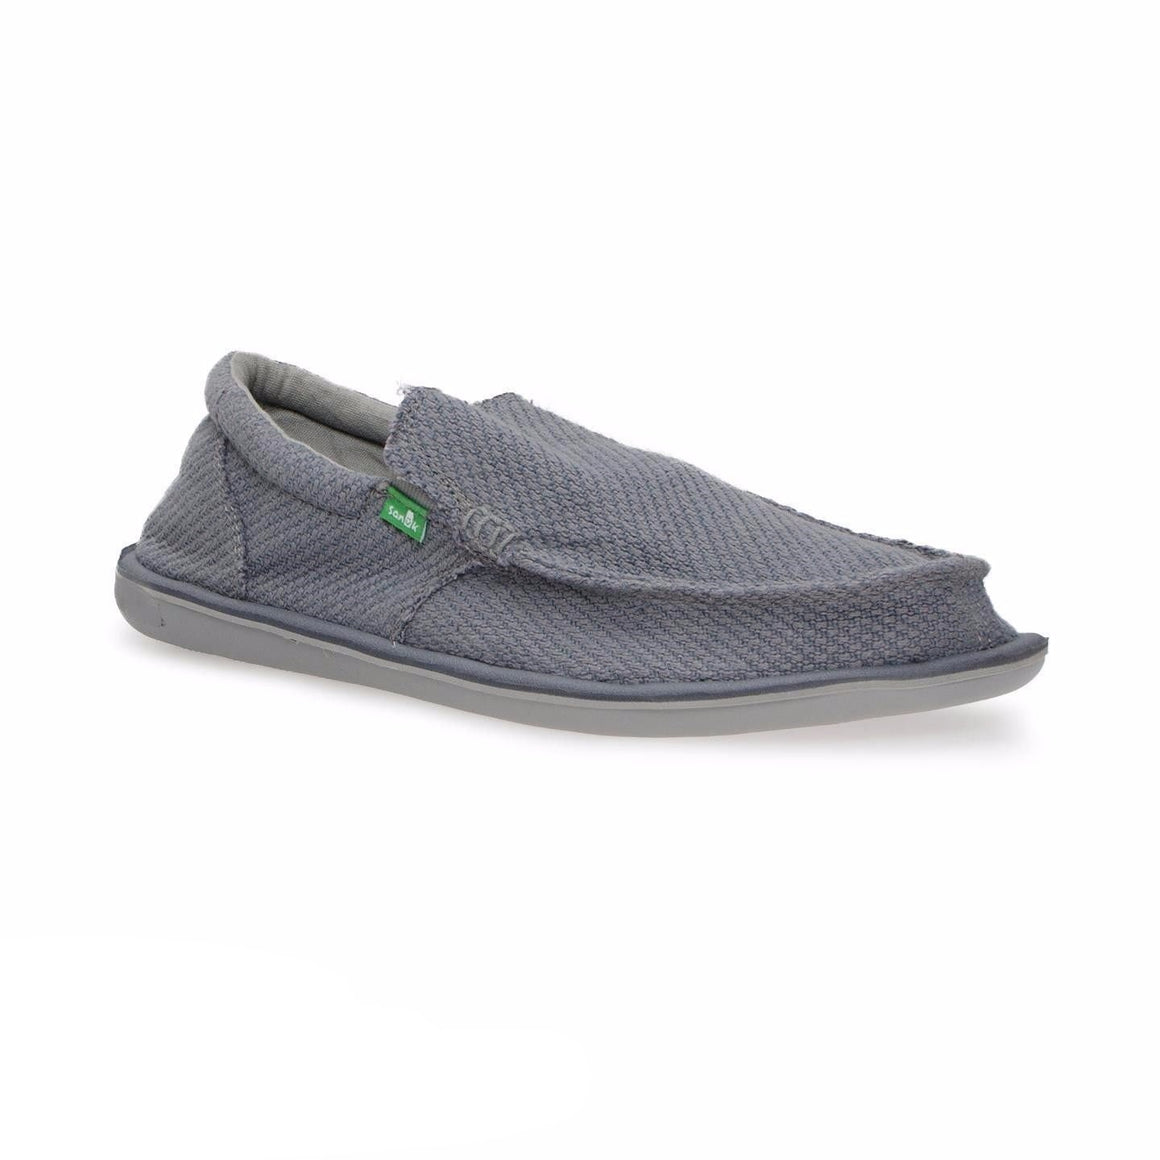 Sanuk Chibalicious Gray Charcoal Hemp Shoes